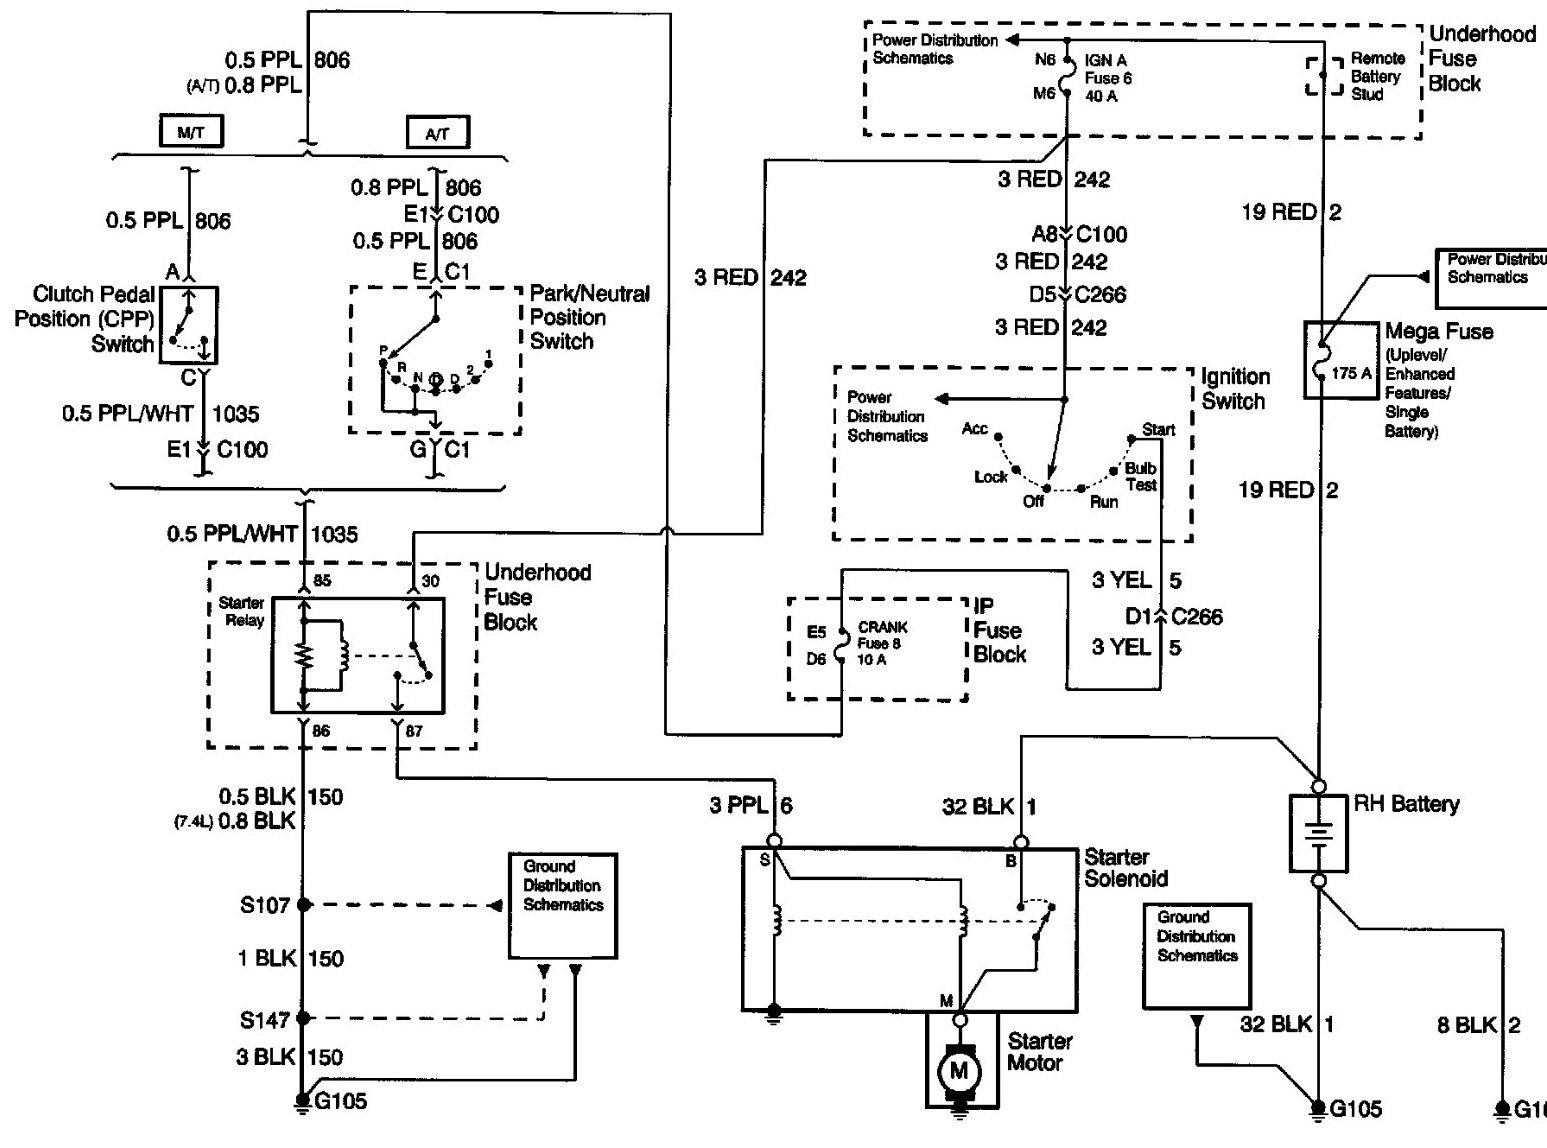 Wiring Diagram For 2002 Cadillac Escalade Automotive Radio Diagrams I Have A That Wont Start Seems Like Its The Anti Rh Justanswer Com Pinout Schematics 2004